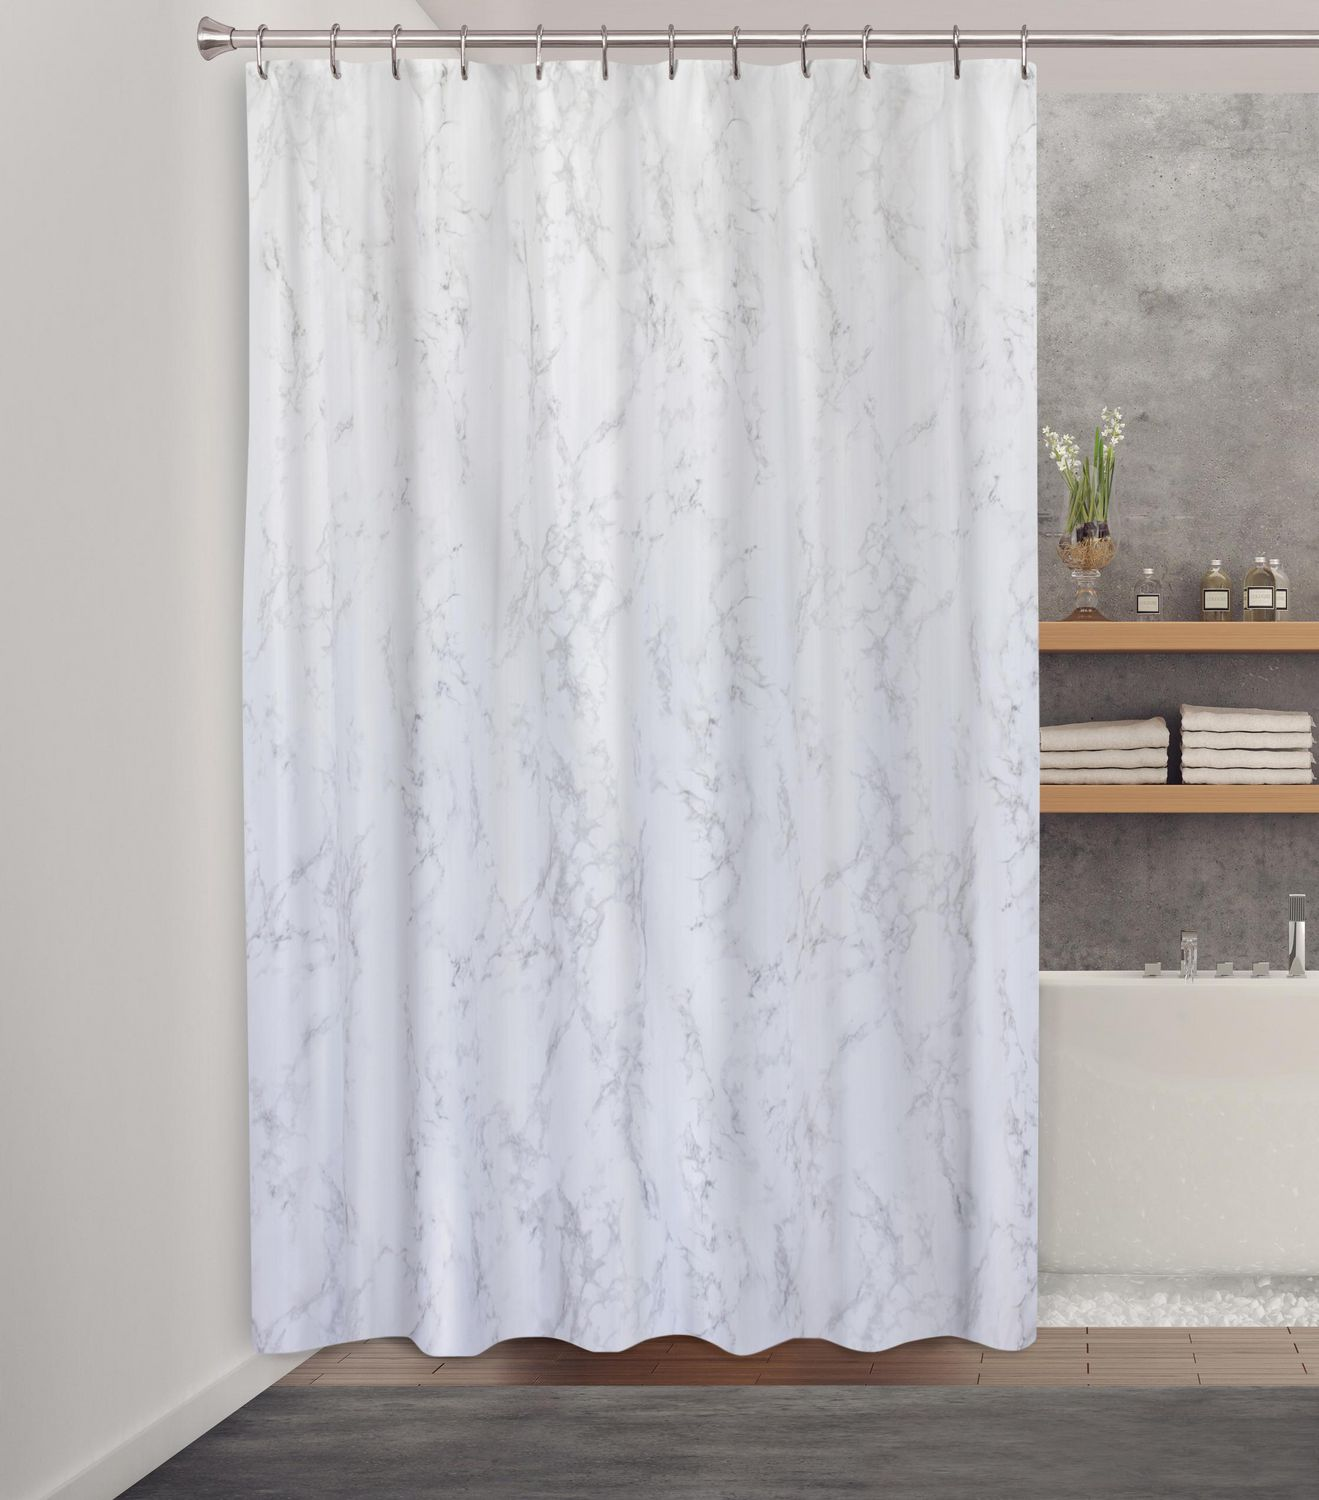 Splash Home Marble Polyester Fabric Shower Curtain 70 X 72 Grey